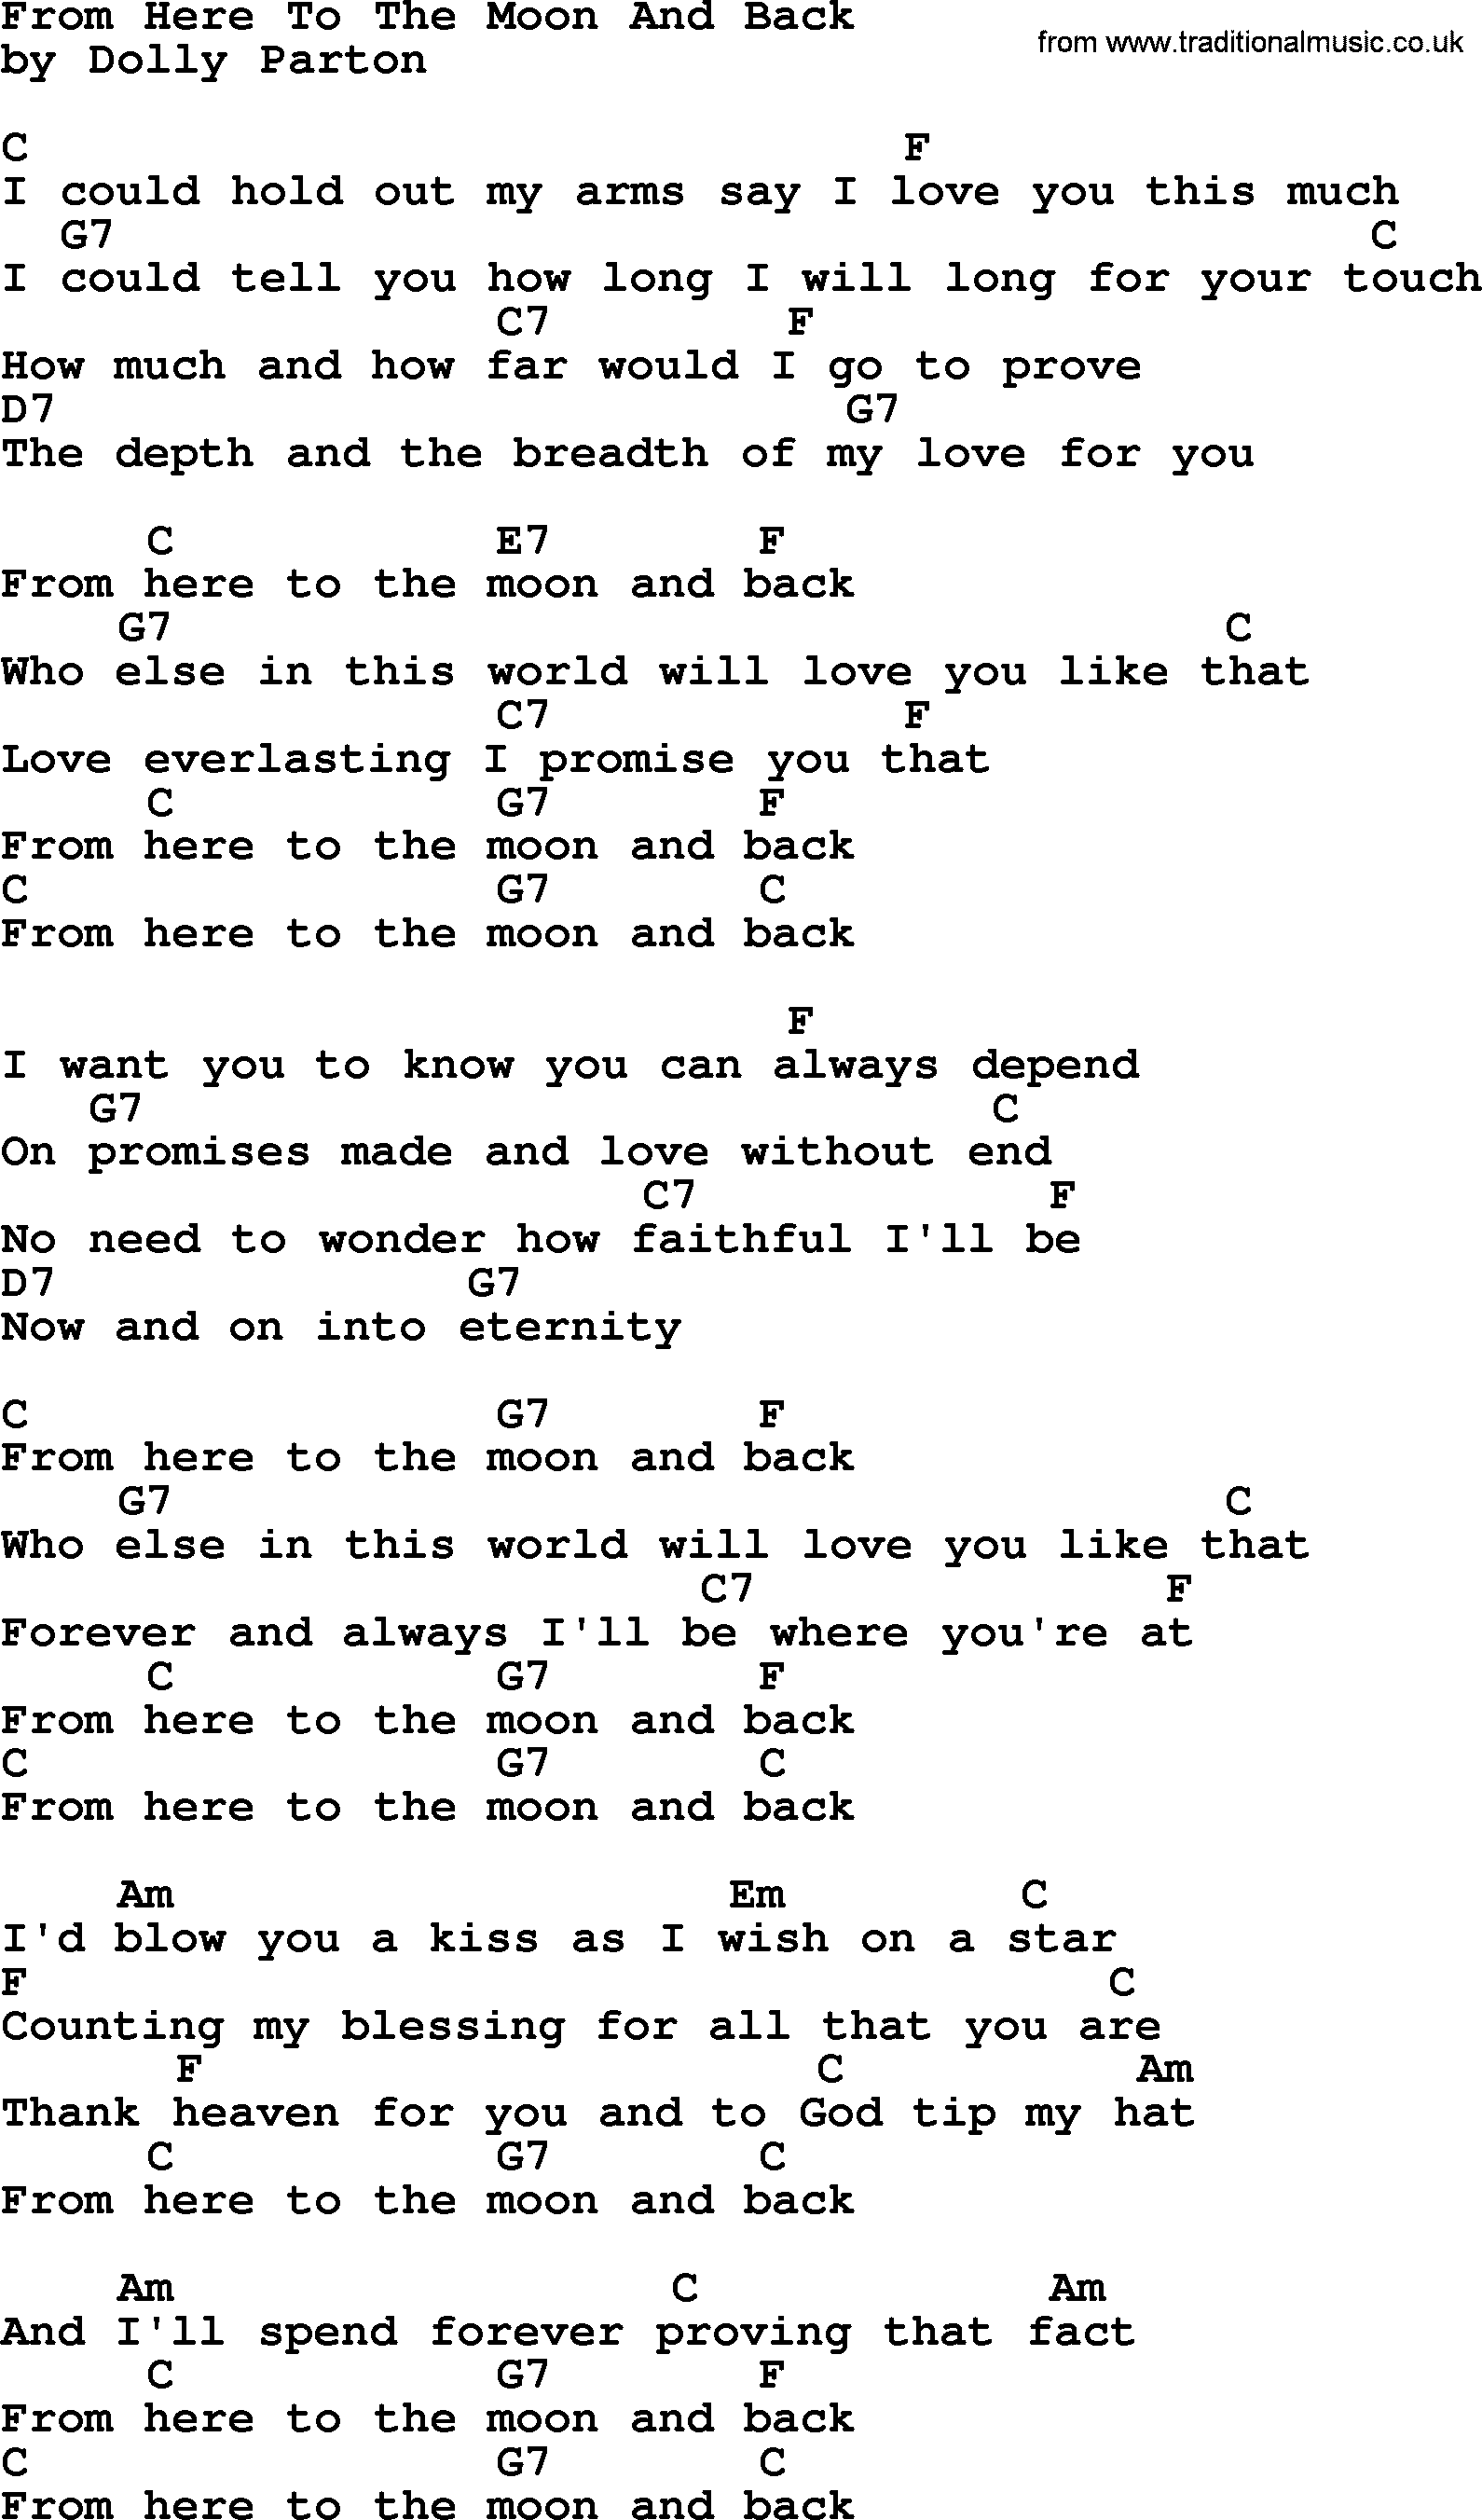 Dolly Parton Song From Here To The Moon And Back Lyrics And Chords